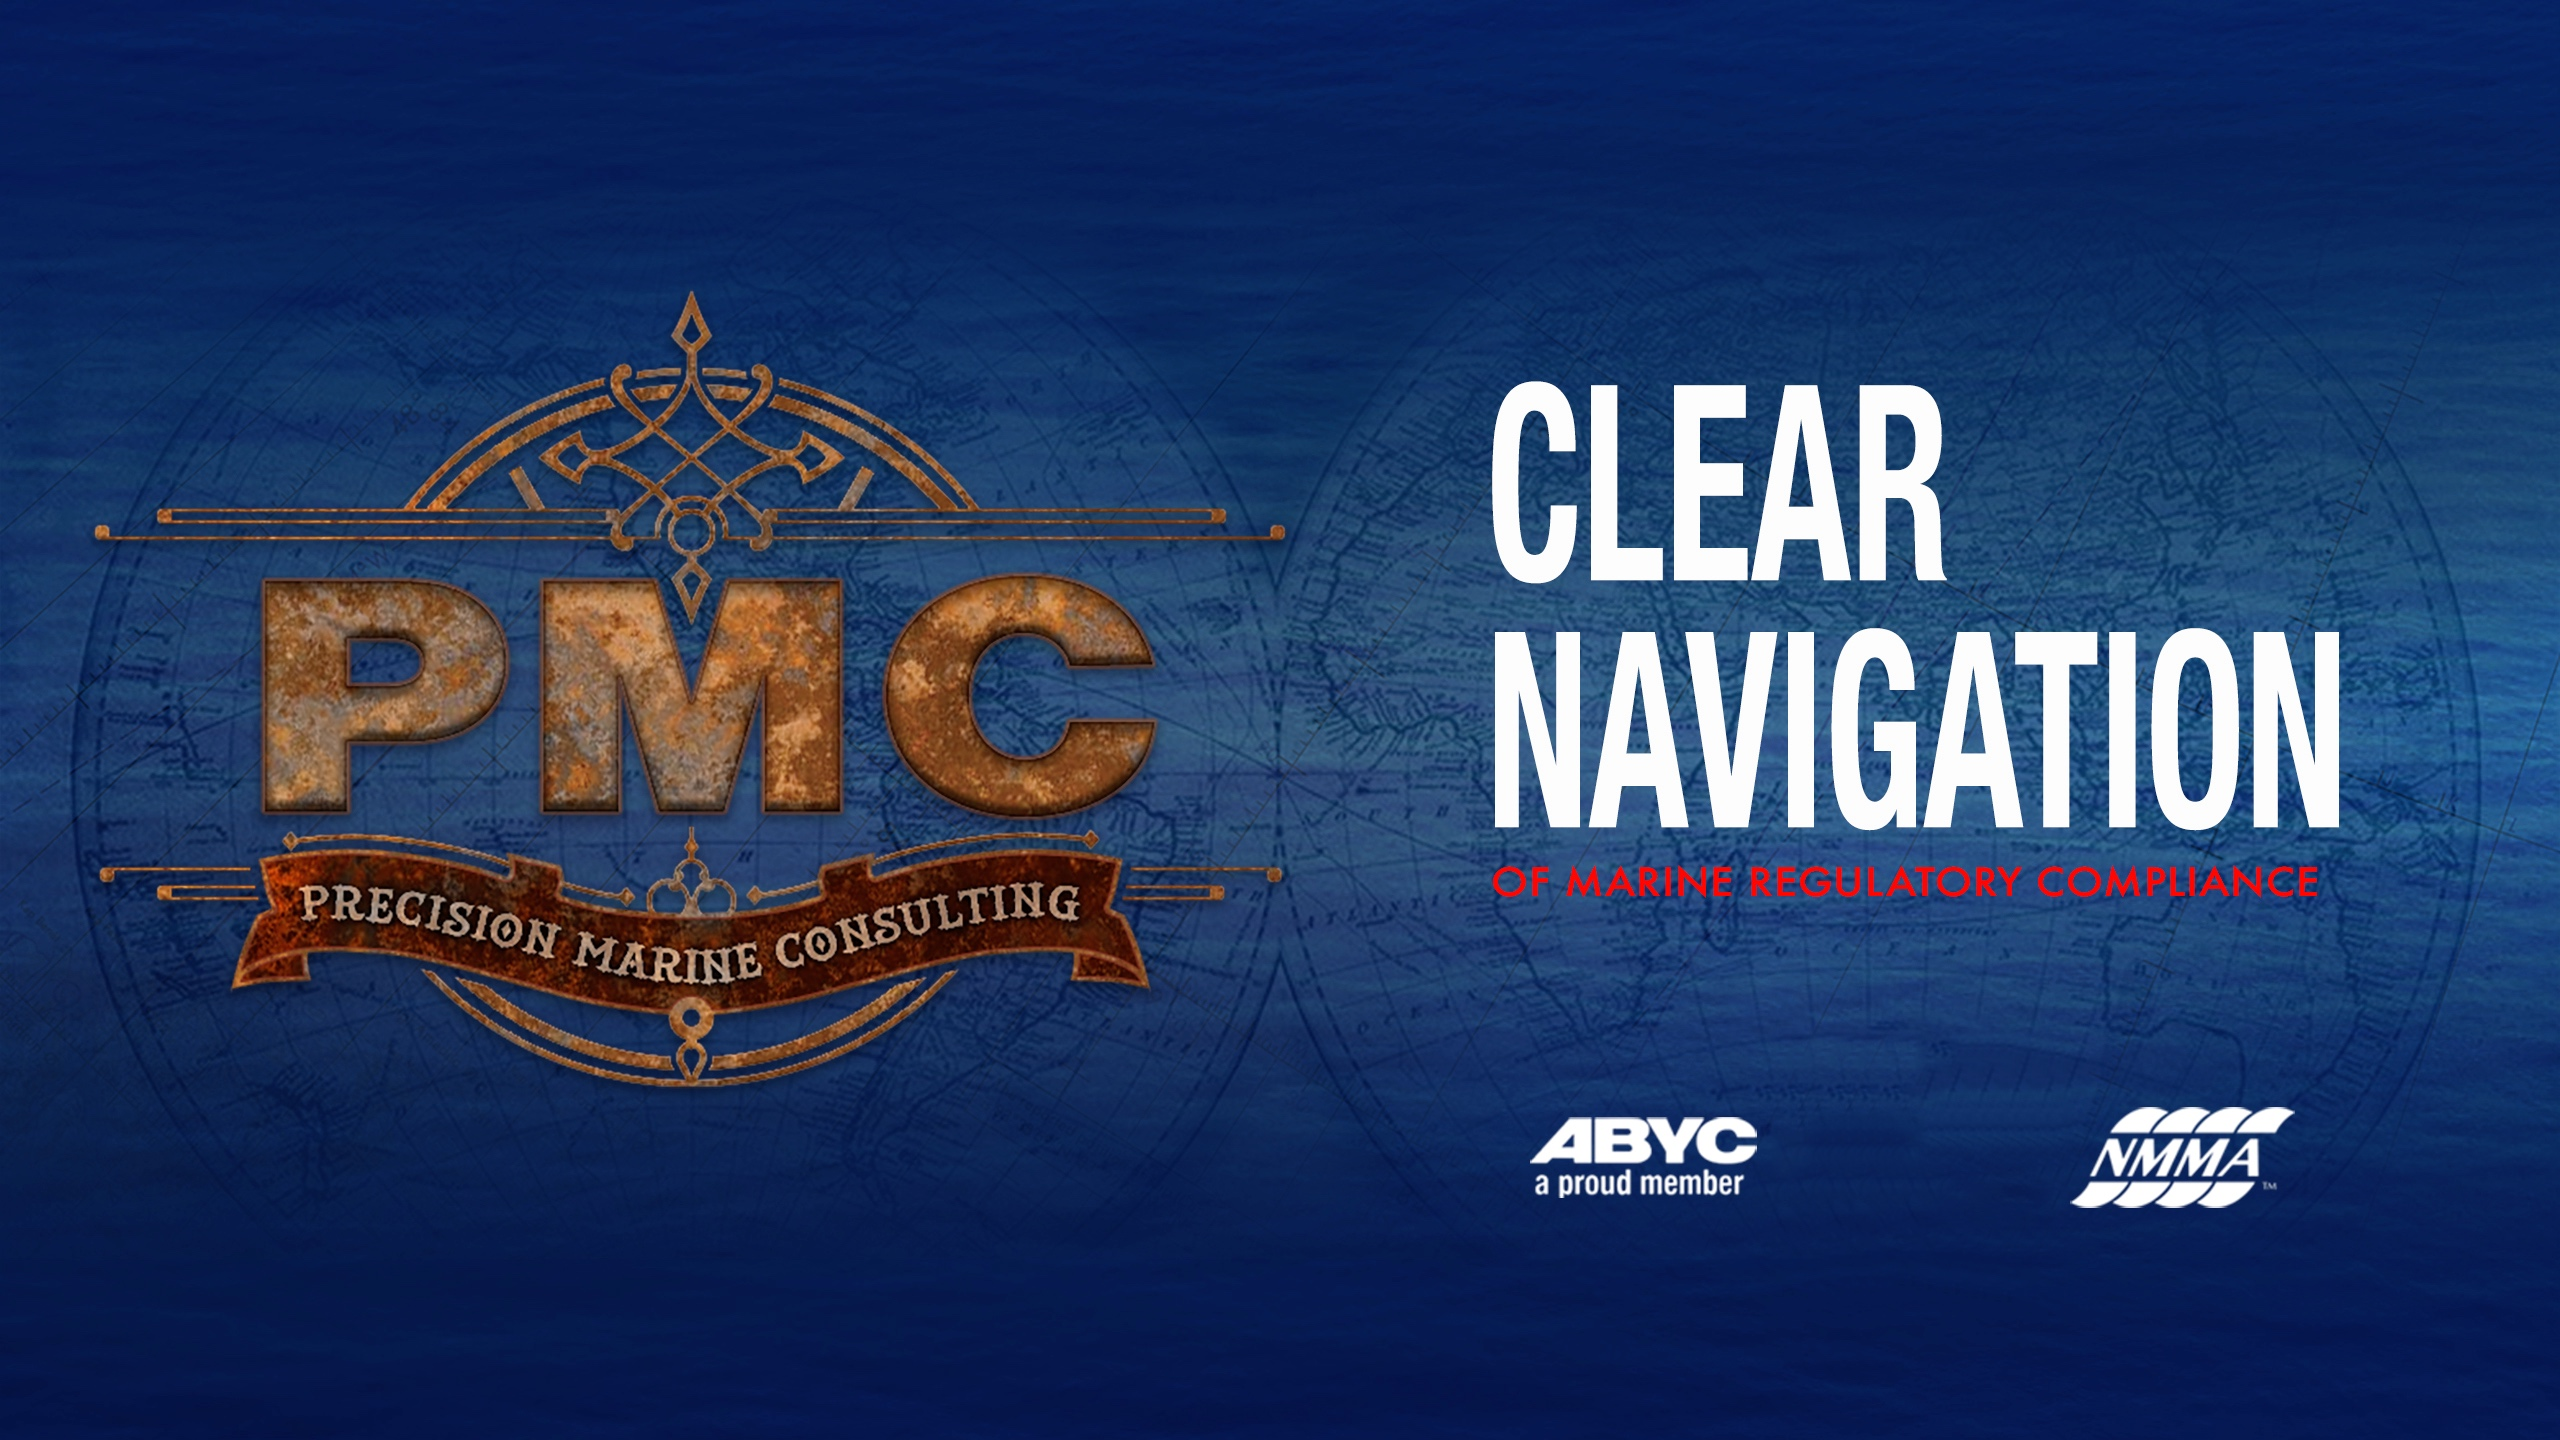 The premier consulting group of the USCG compliant boat builders using the ABYC and NMMA